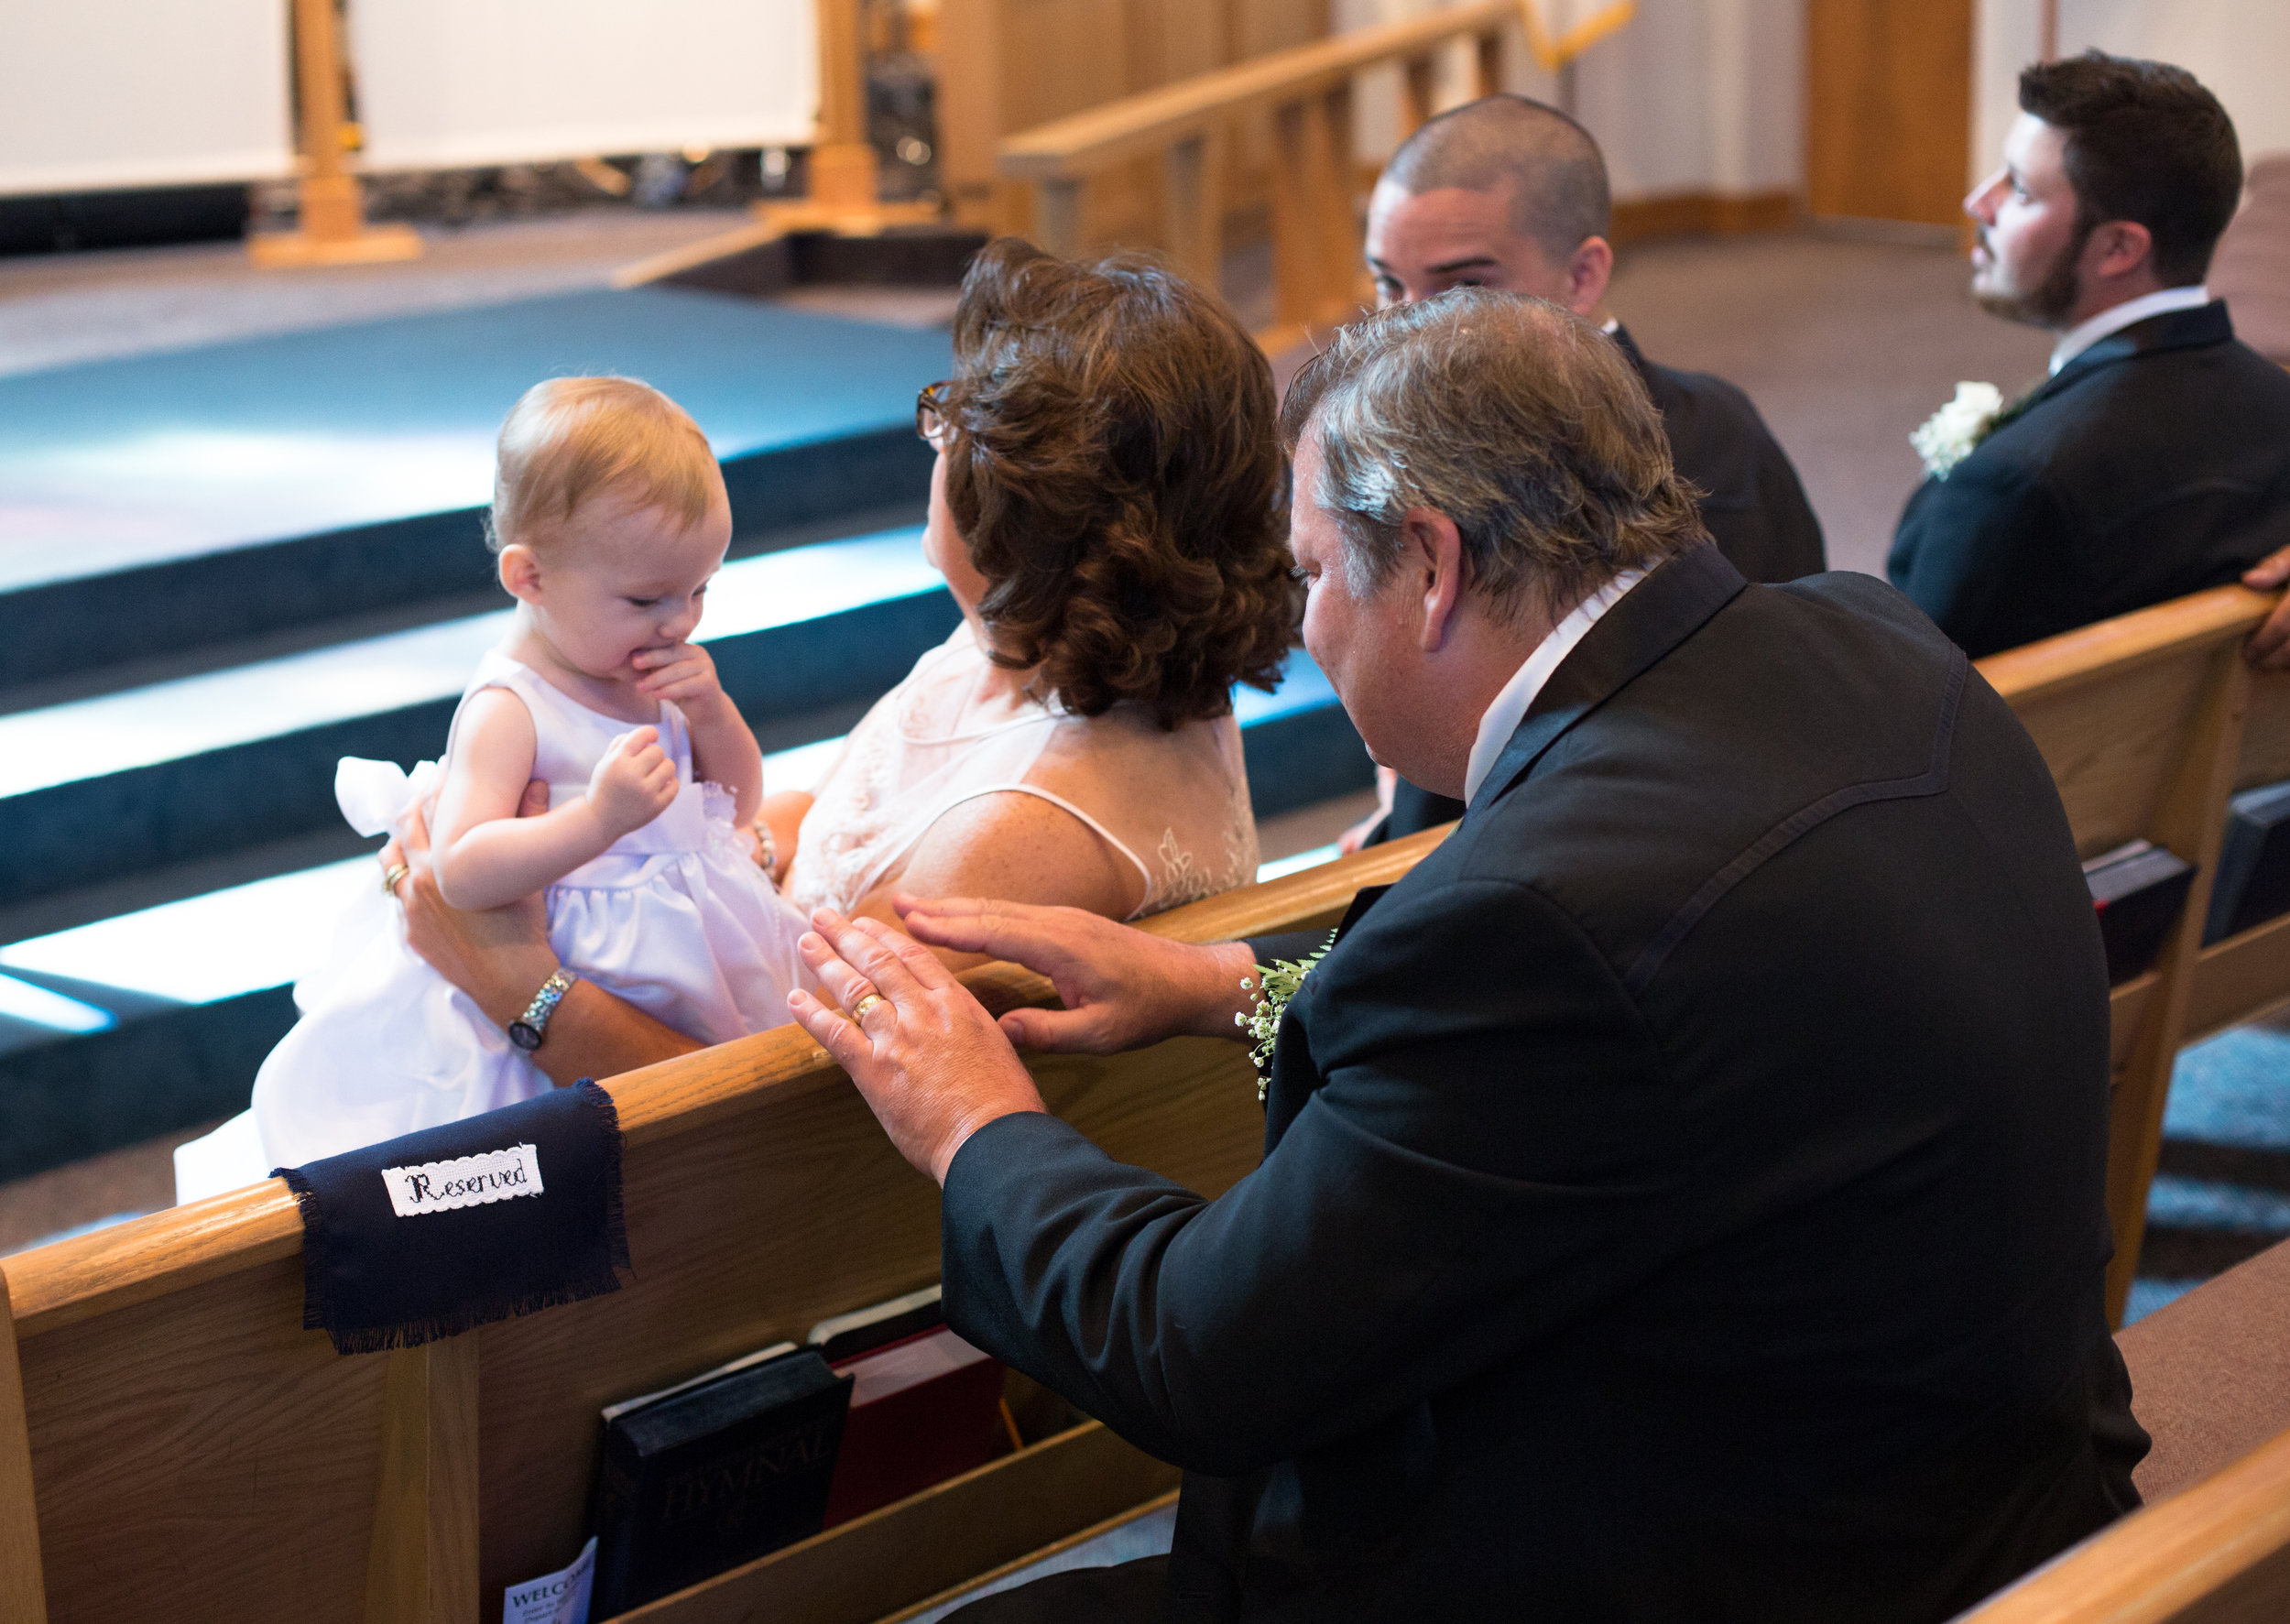 father_of_the_groom_and_baby_synan